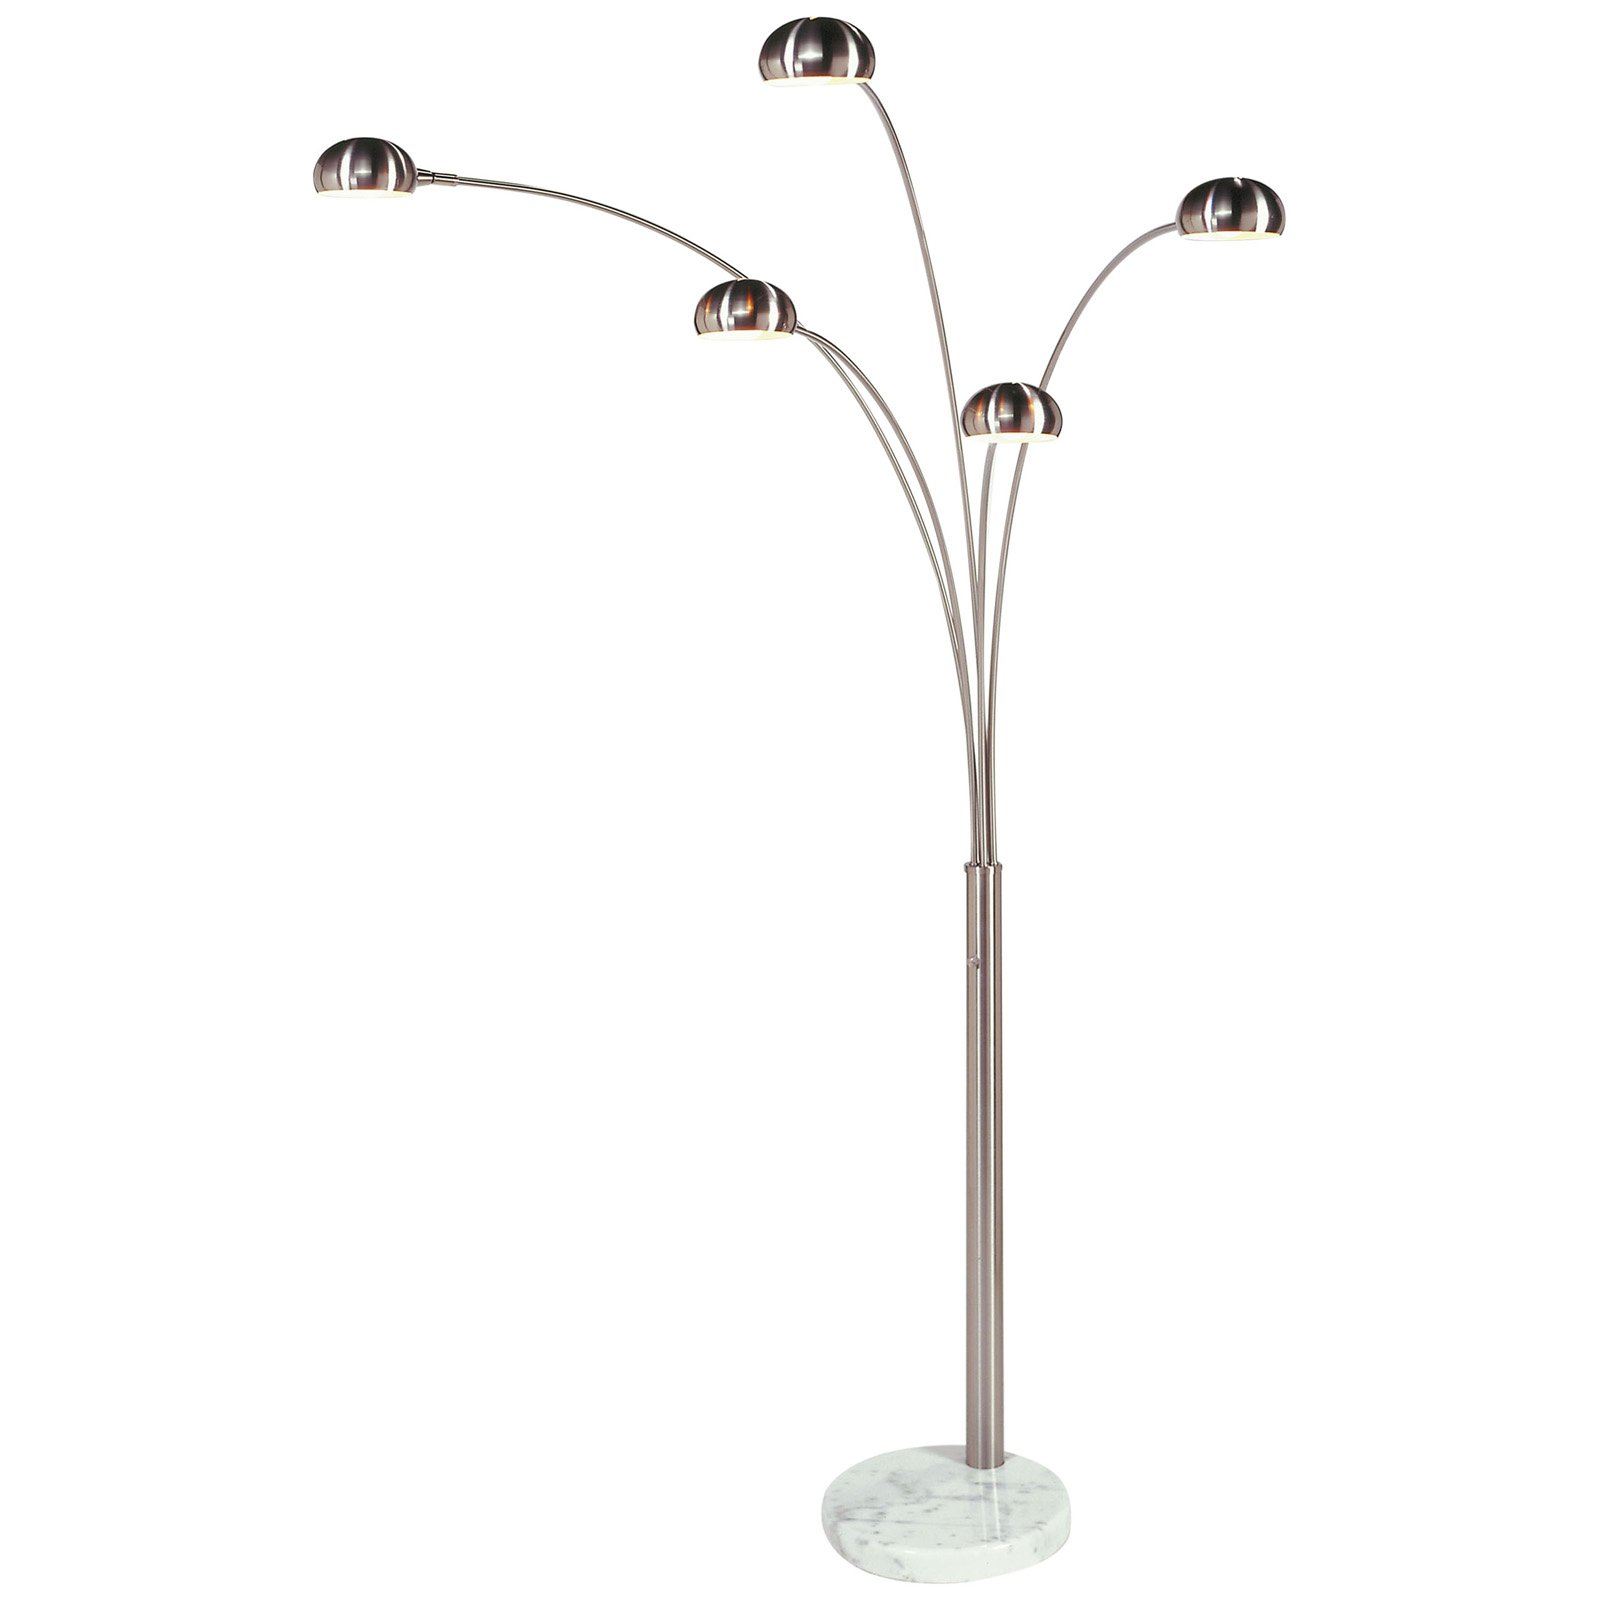 5 Bulb Floor Lamp A Sense Of Beauty For Your Space